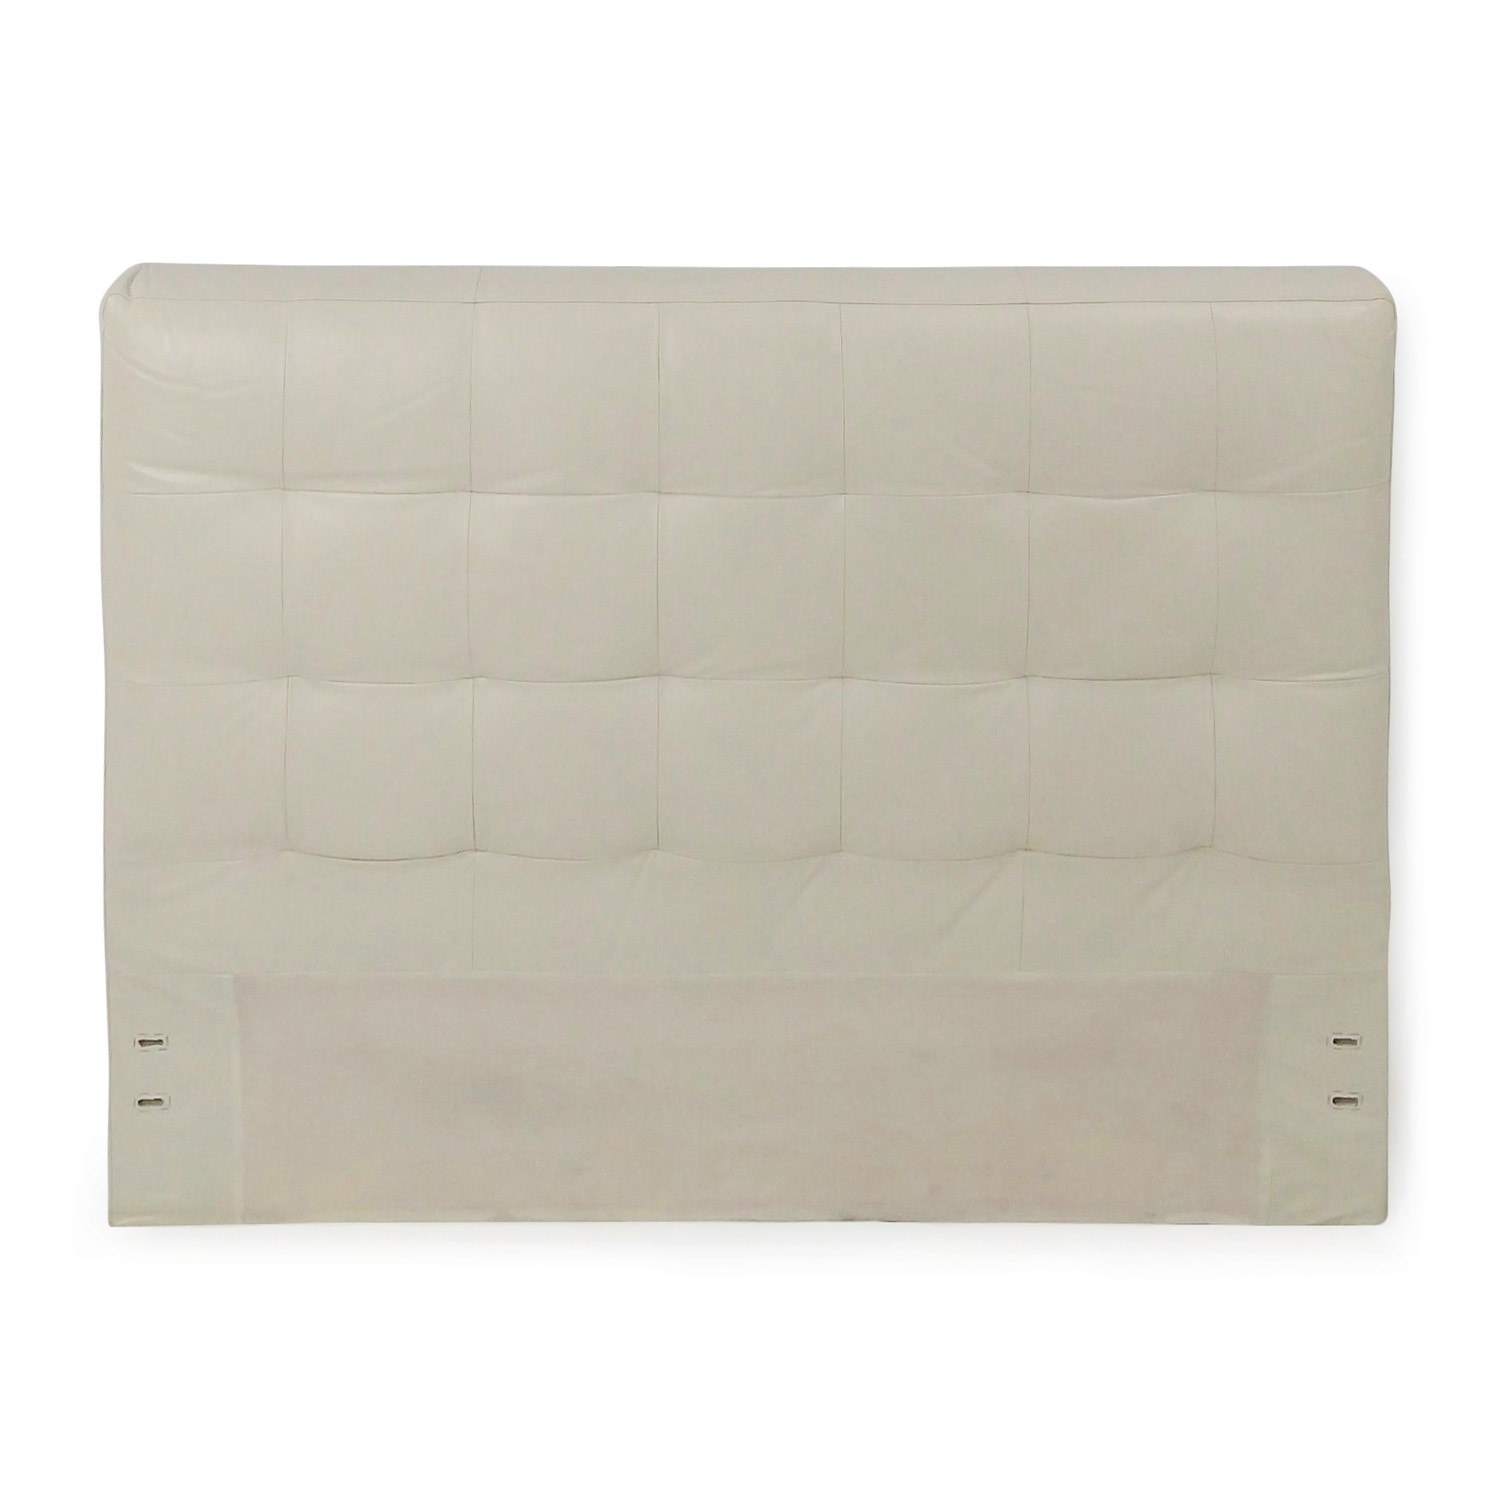 buy West Elm Tufted Leather Headboard - Full West Elm